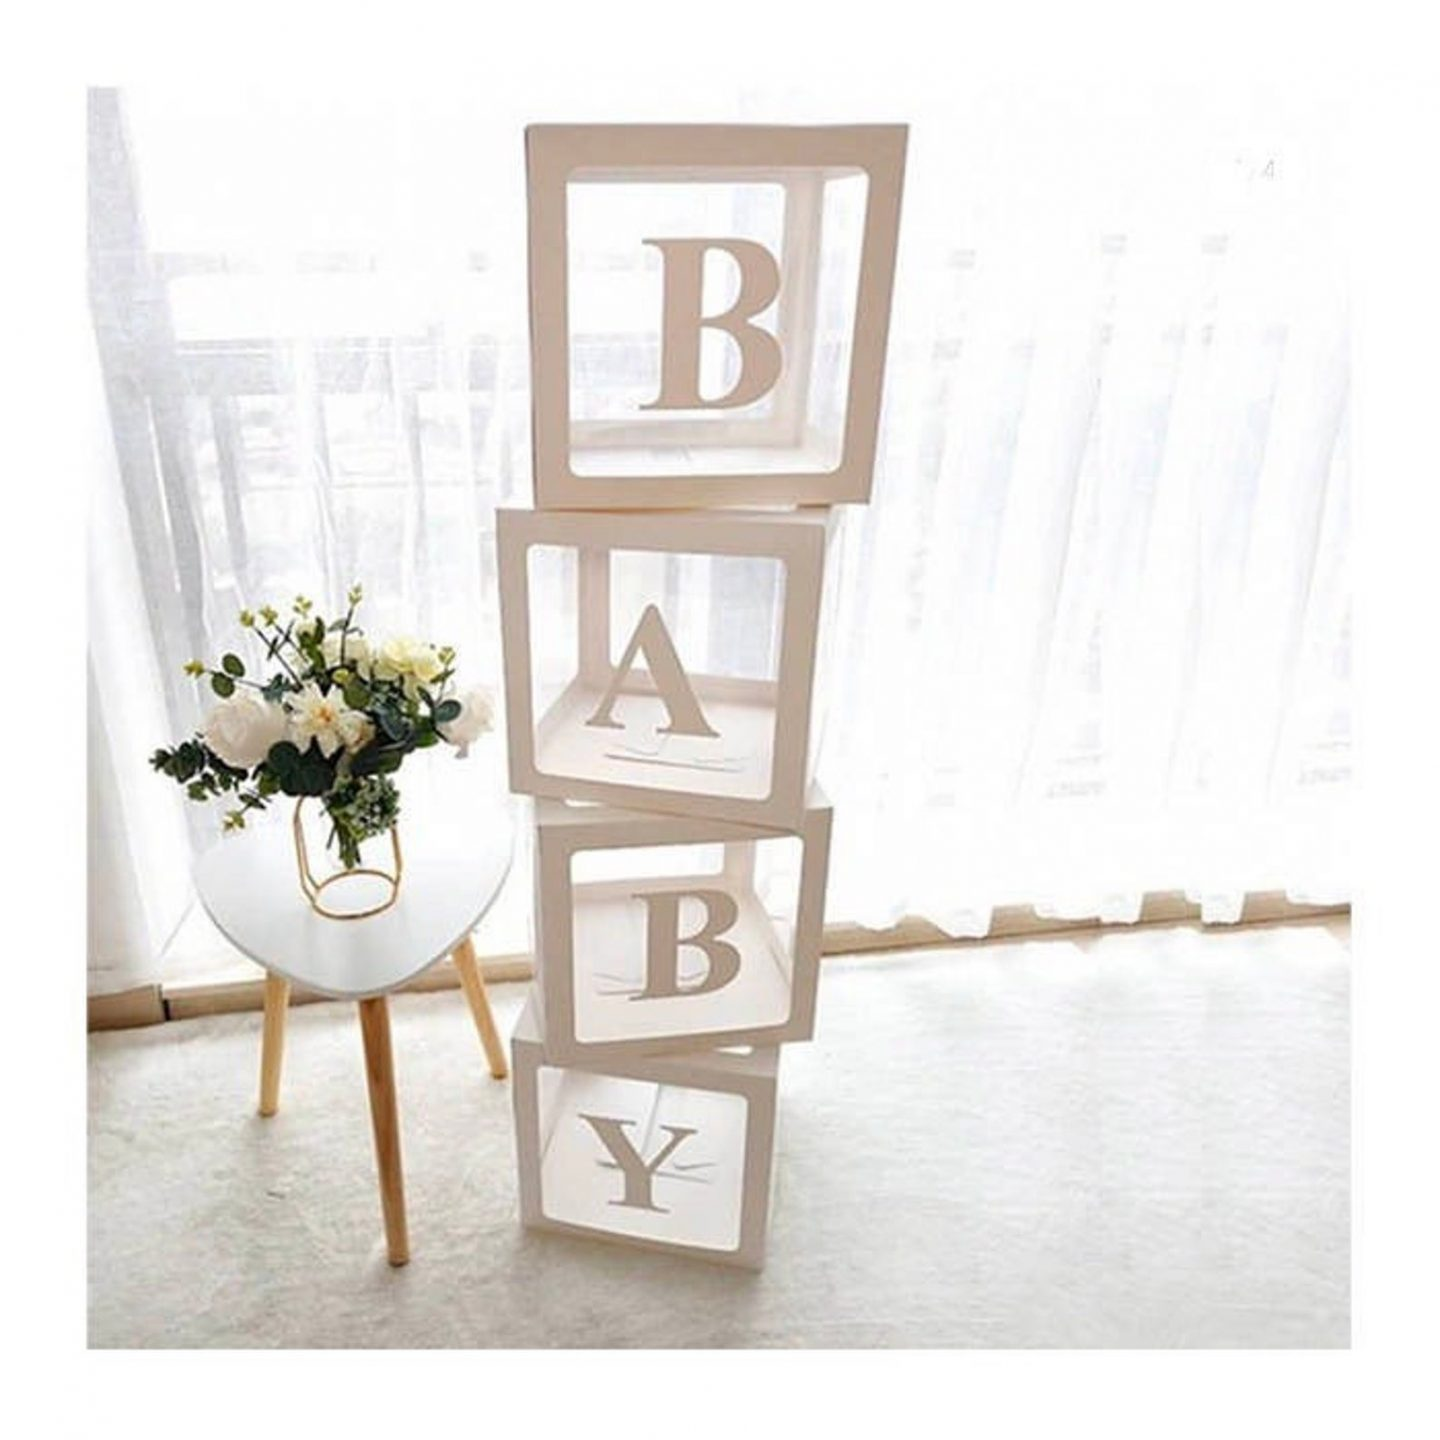 White transparent BABY boxes for the baby shower